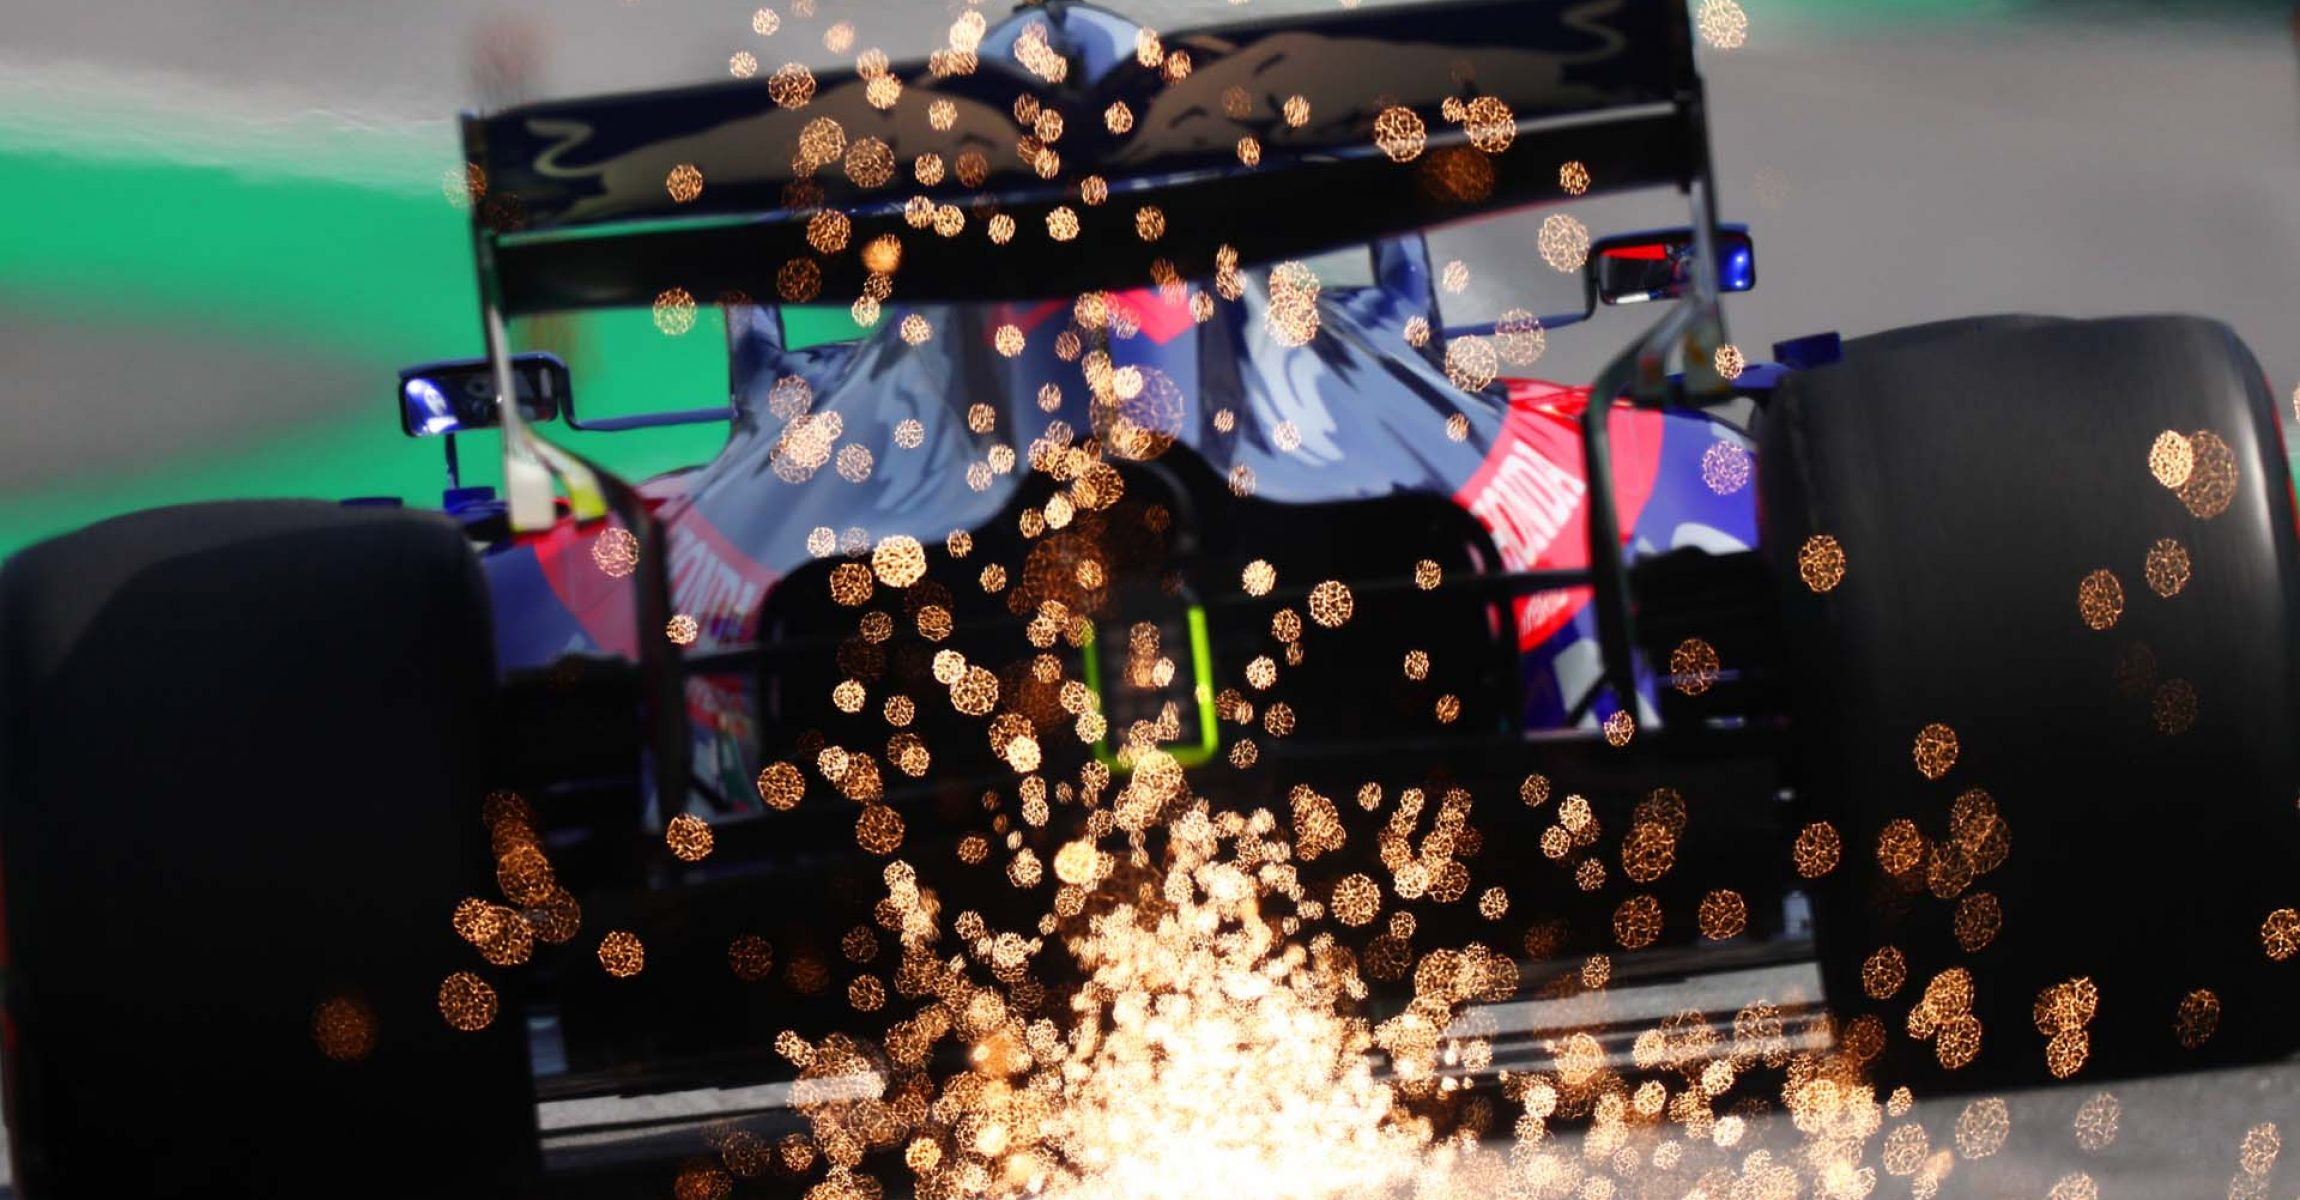 SAO PAULO, BRAZIL - NOVEMBER 17: Sparks fly behind Pierre Gasly of France driving the (10) Scuderia Toro Rosso STR14 Honda on track during the F1 Grand Prix of Brazil at Autodromo Jose Carlos Pace on November 17, 2019 in Sao Paulo, Brazil. (Photo by Dan Istitene/Getty Images) *** BESTPIX *** // Getty Images / Red Bull Content Pool  // AP-227DYNVNH2111 // Usage for editorial use only //